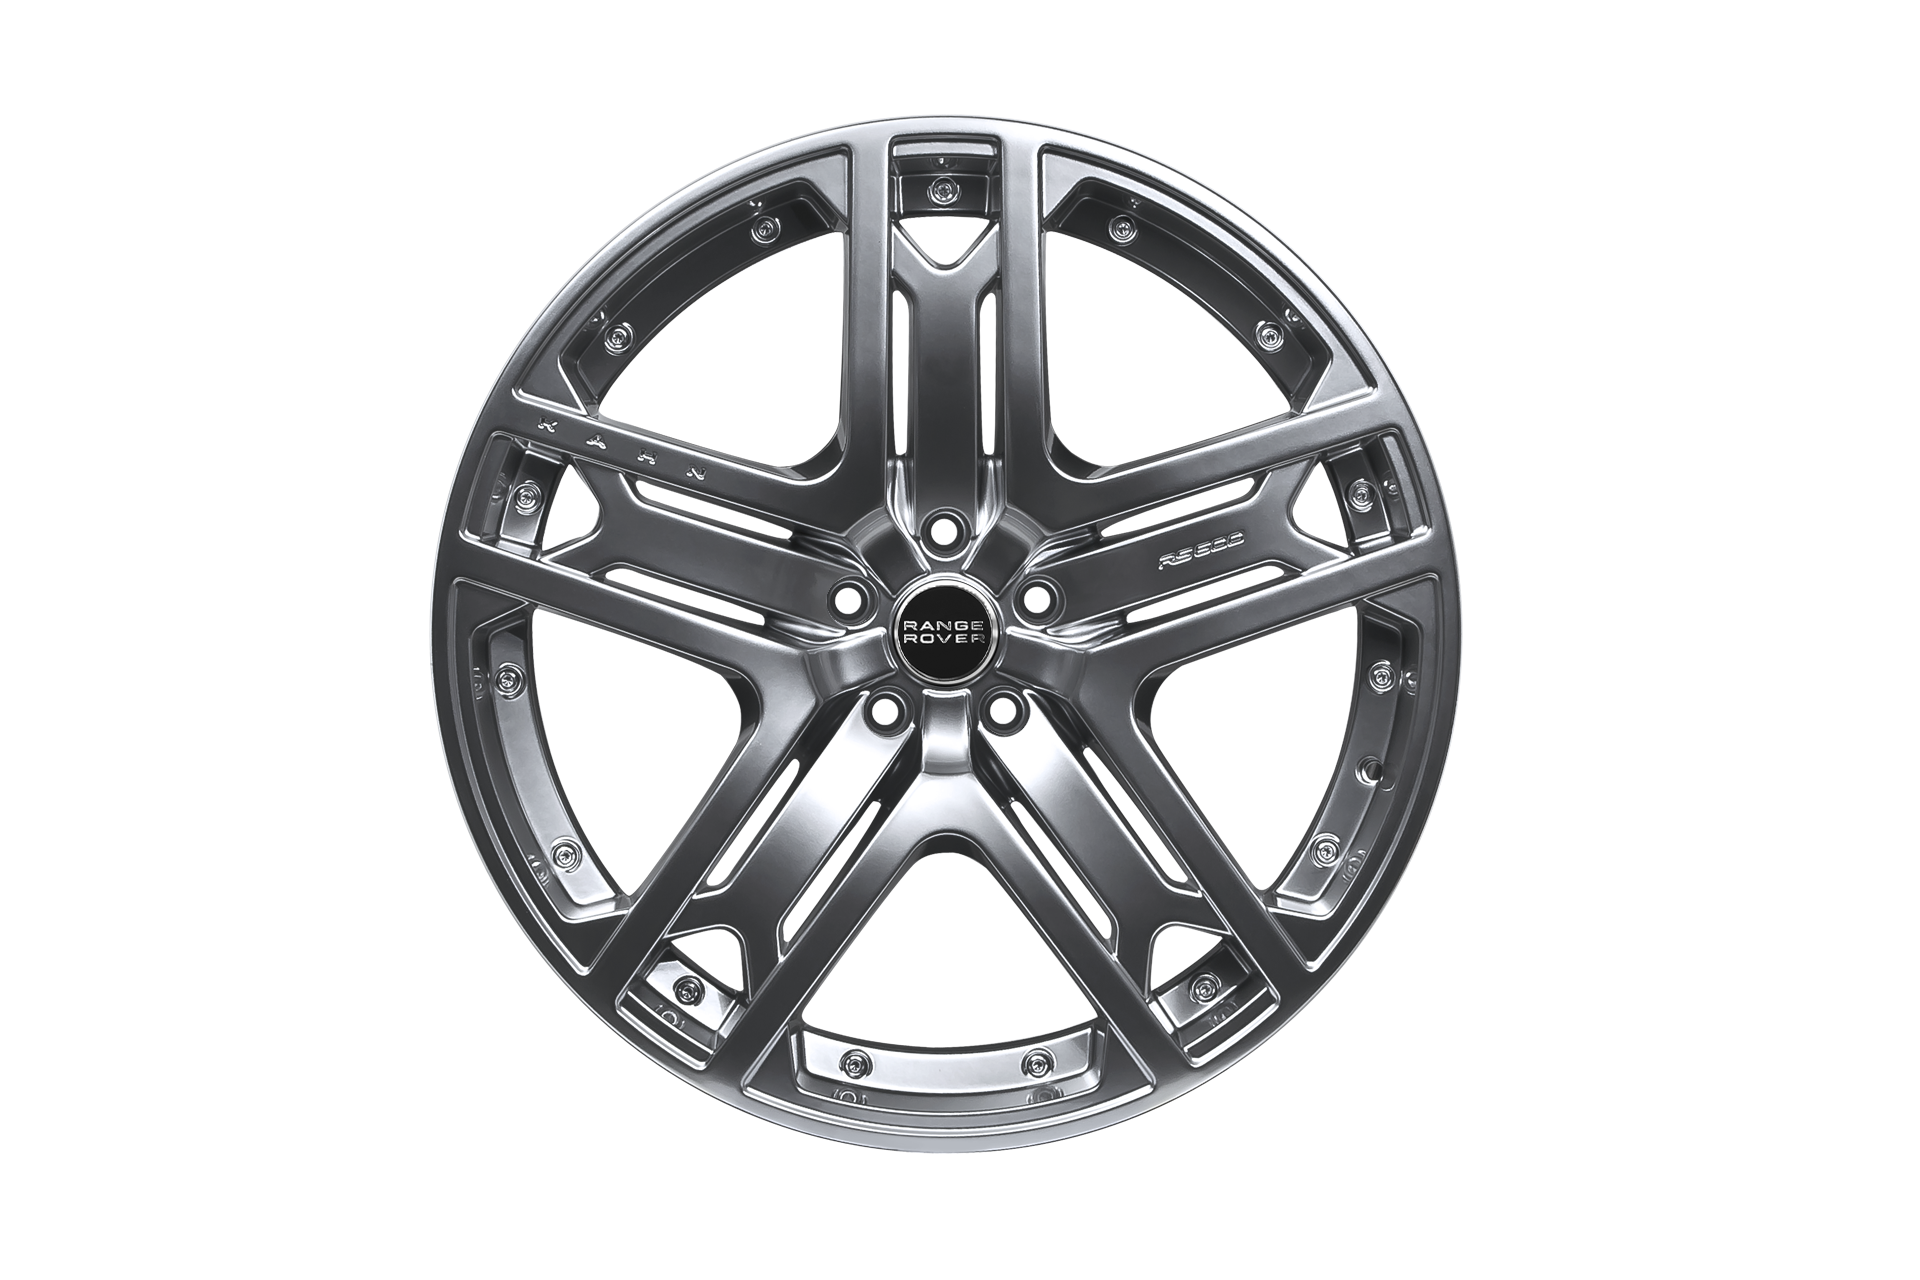 Range Rover Sport (2013-2018) Rs600 Light Alloy Wheels by Kahn - Image 3683